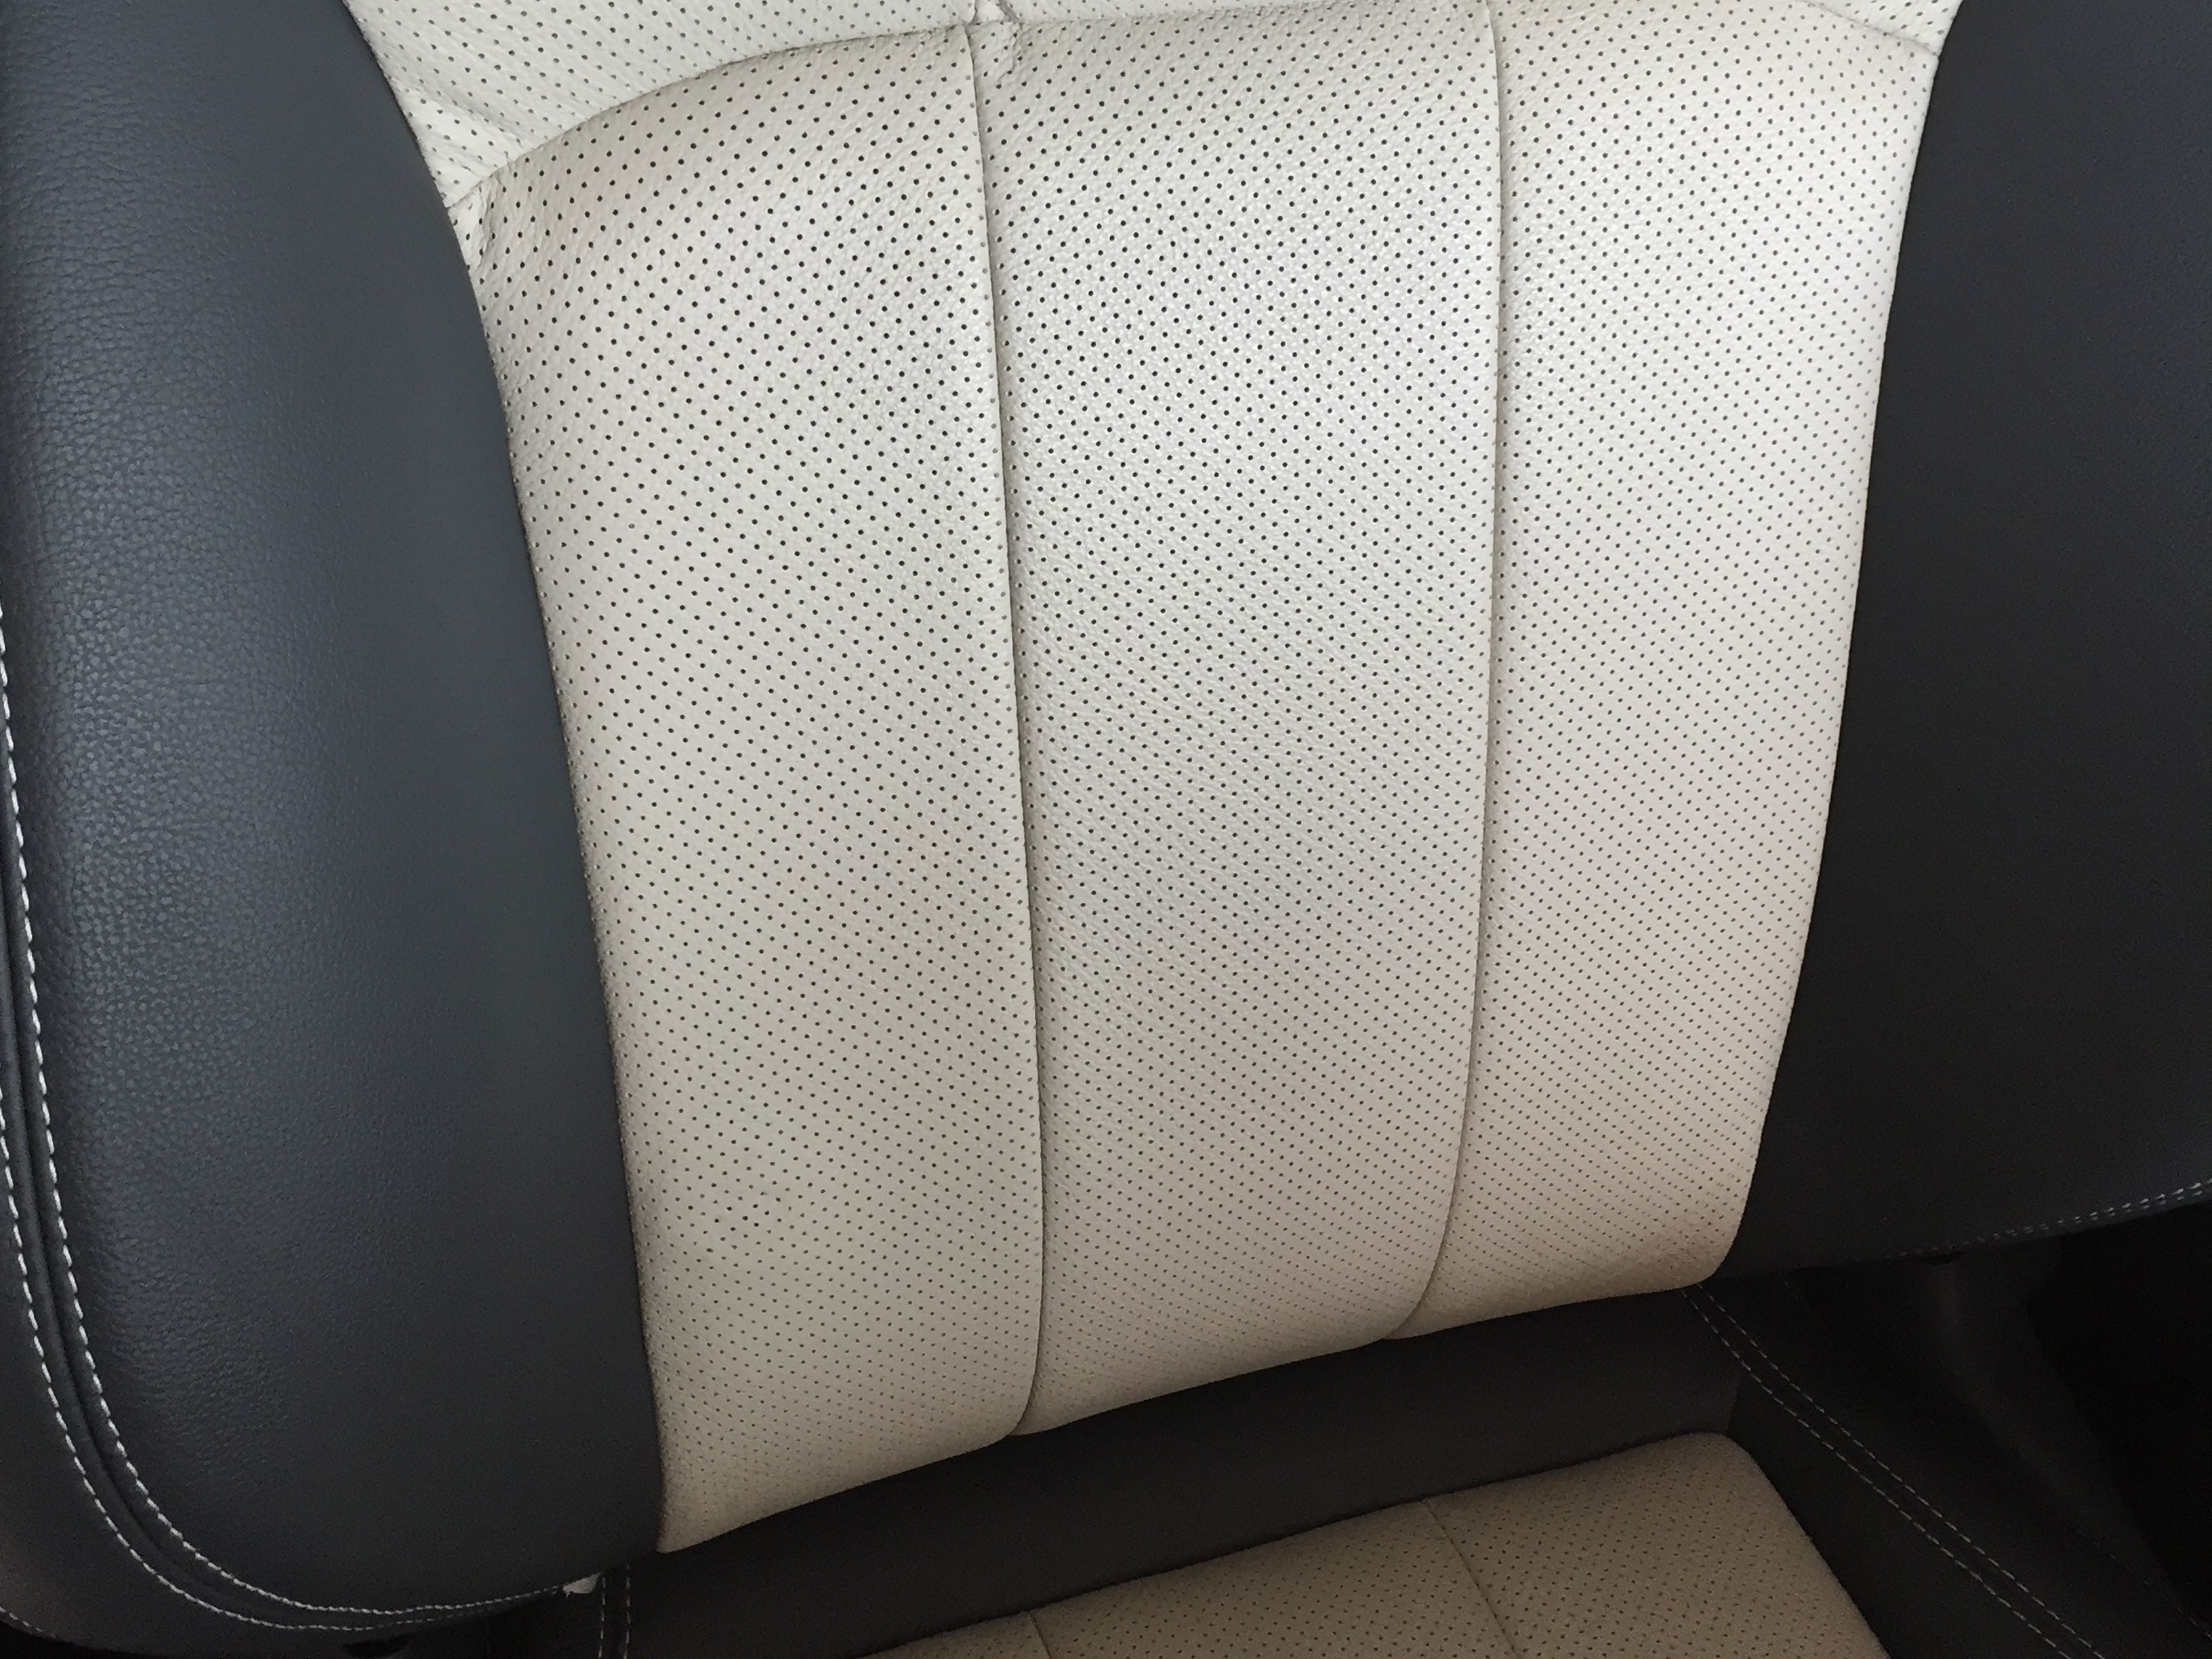 6 month old-Range Rover Evoque leather damage after (Close up)